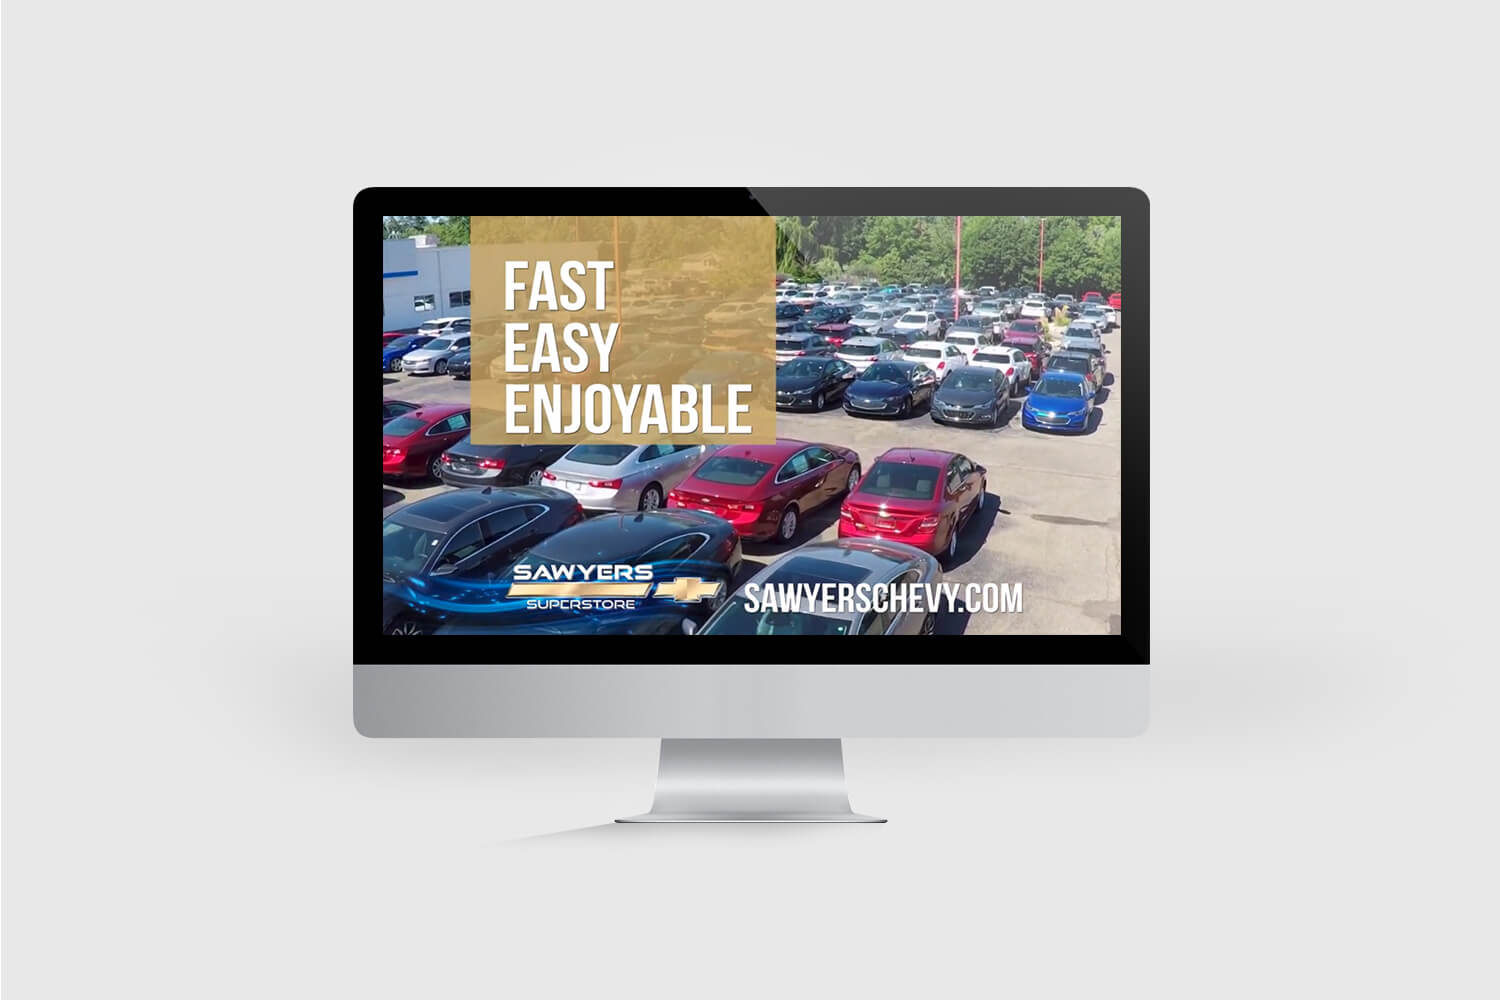 Sawyers Chevrolet Fast Easy Enjoyable Commercial